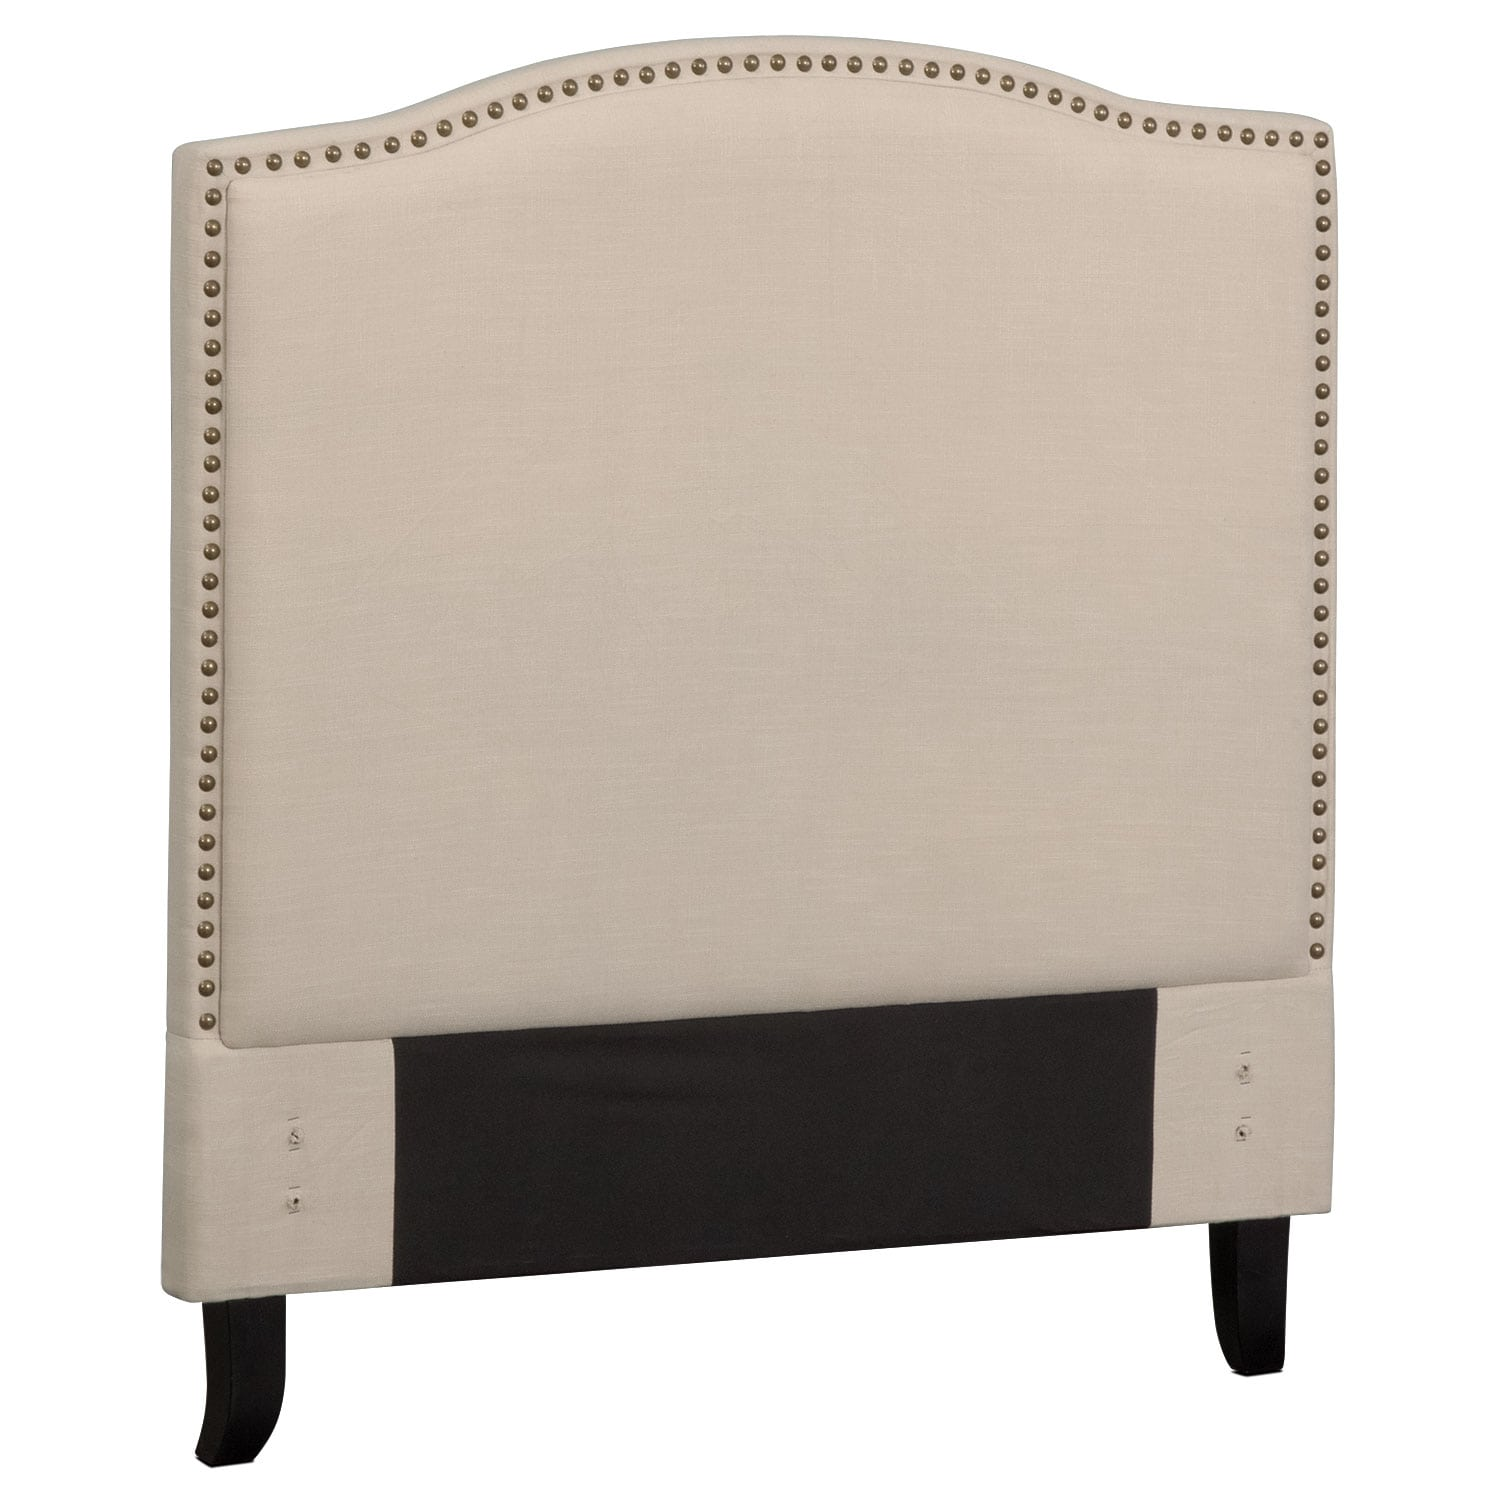 Aubrey Twin Upholstered Headboard - Sand